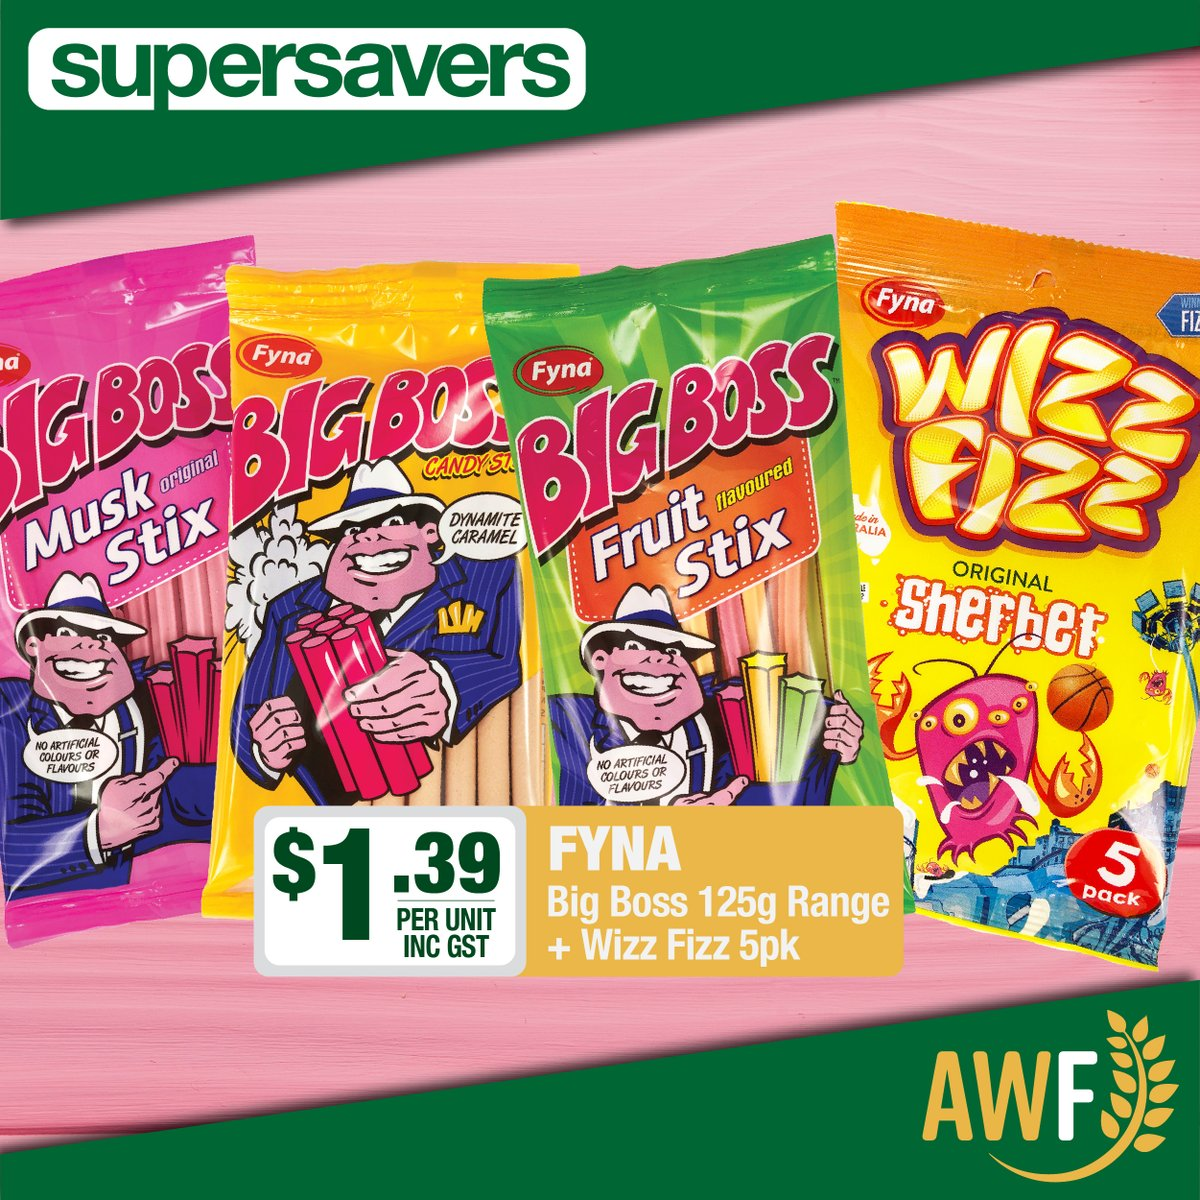 YUM! Big Boss 125g Range and Wizz Fizz 5 pack bags available in this months Super Savers!  View it online: https://t.co/dqDe9CSRpD ------------- 📞 Call us: (08) 9041 1424 📧 Email: sales@allwaysfoods.com.au #supersavers #AWF #AllwaysFoods #merredin #muskstix #fyna #wizzfizz https://t.co/tKjK09LjXX